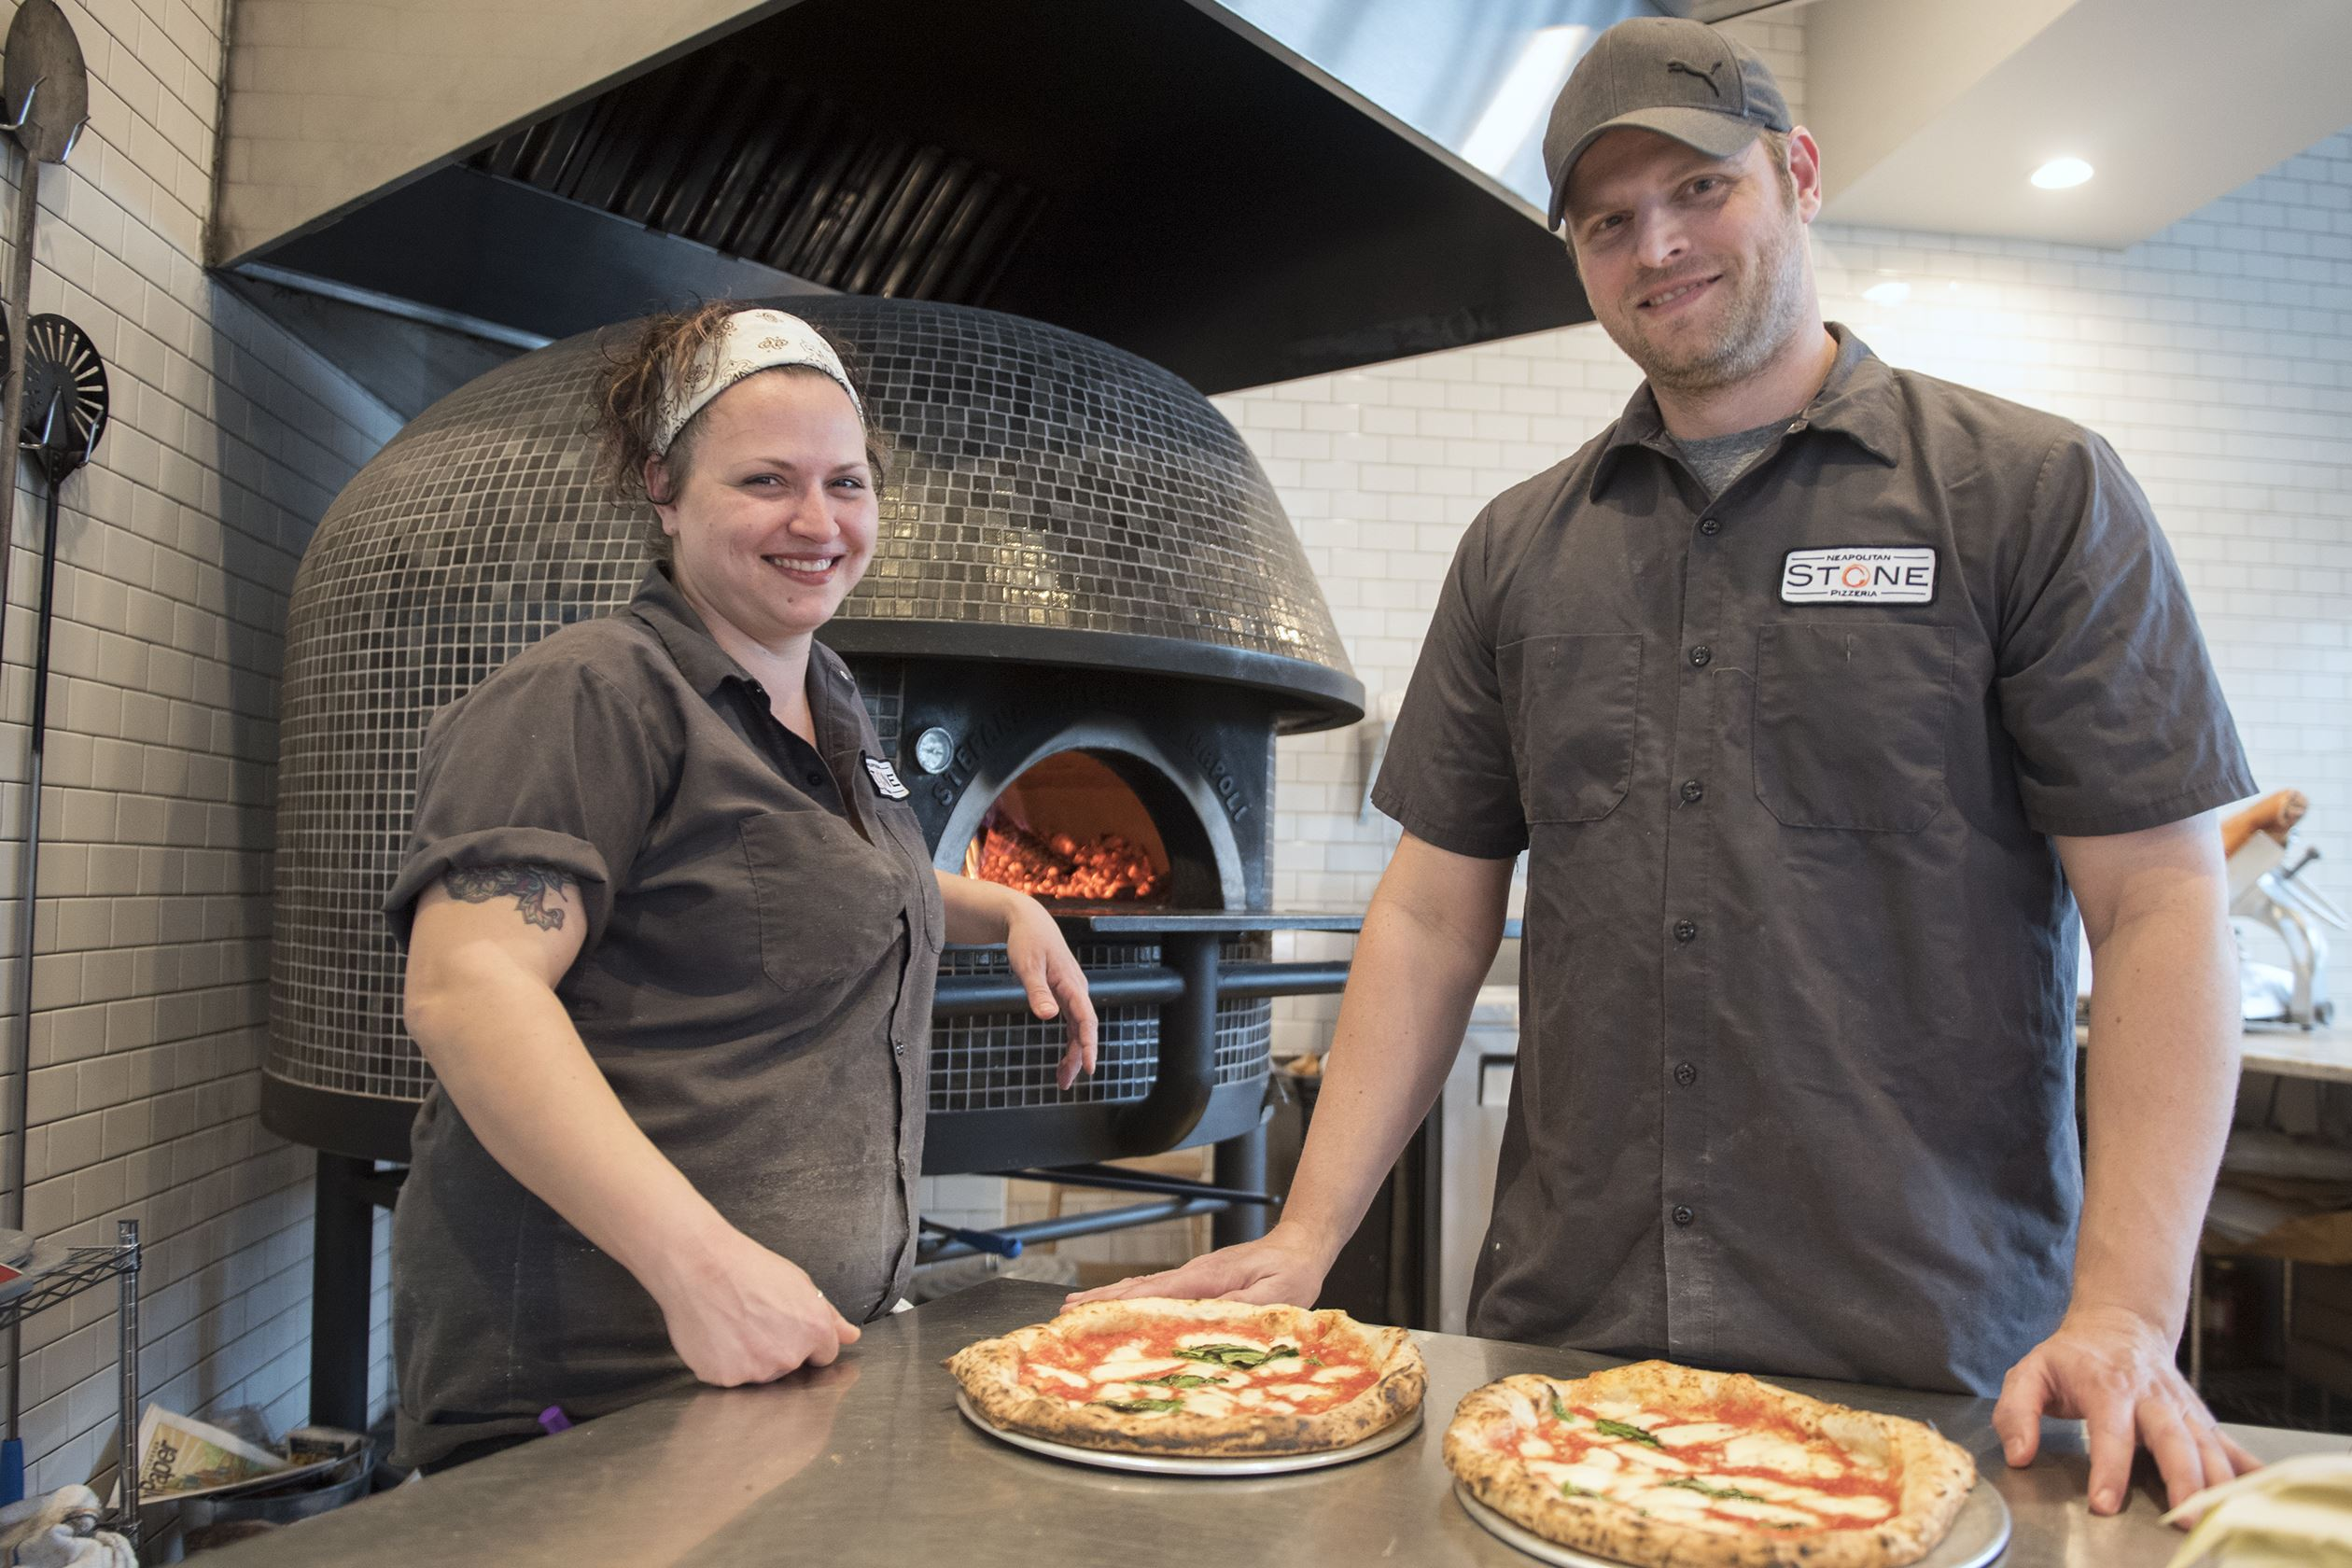 20170307hnPizza-7EDIT-6 Sibling duo Nicole and Rick Werner pose for a photo at their restaurant, Stone Neapolitan Pizzeria, Downtown. Rick formerly worked in corporate America for many years before undertaking a new career.